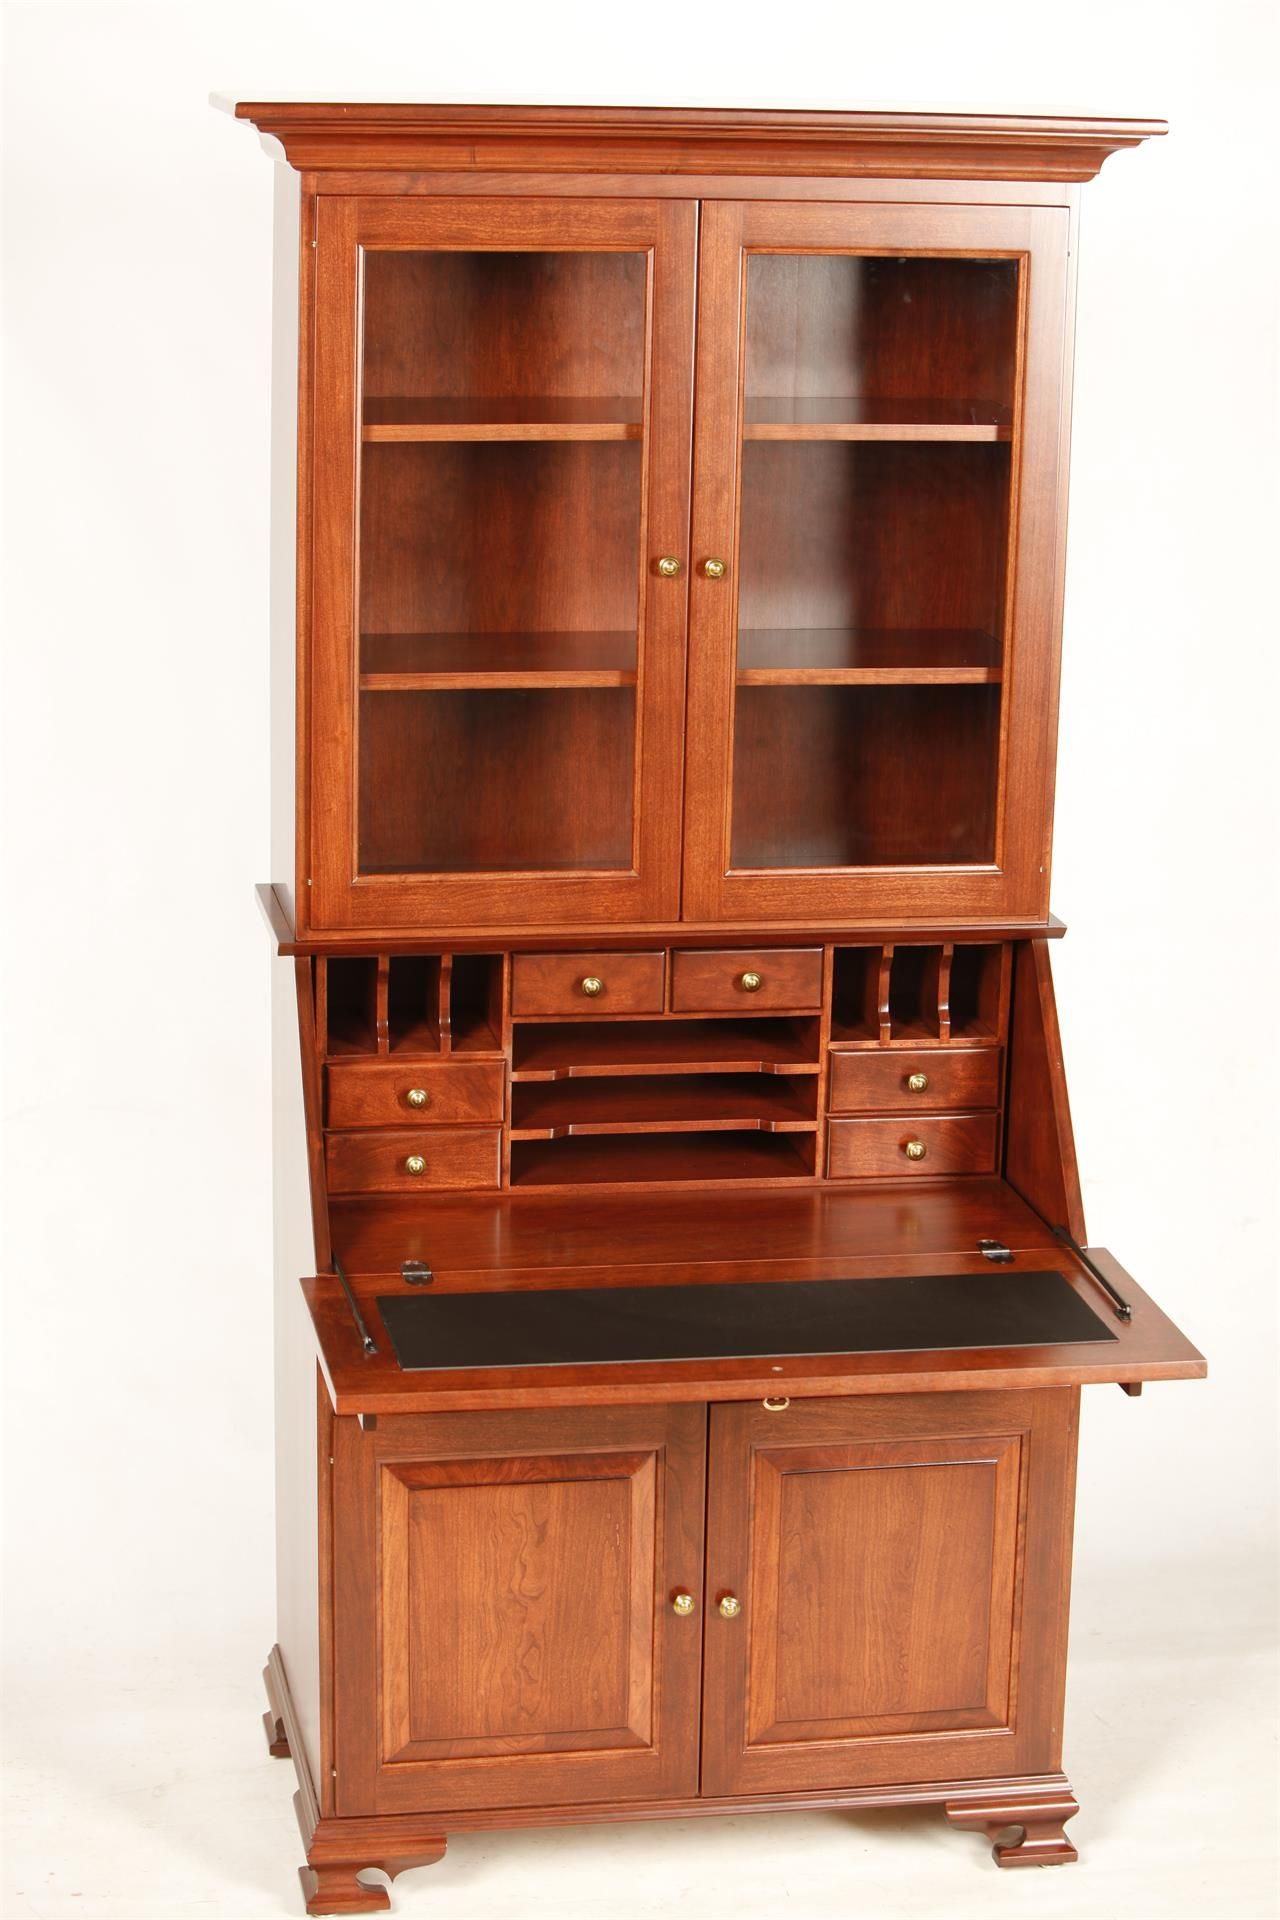 Amish Kitchen Cabinets Near Me Amish Glenmont Secretary Desk With Hutch Top